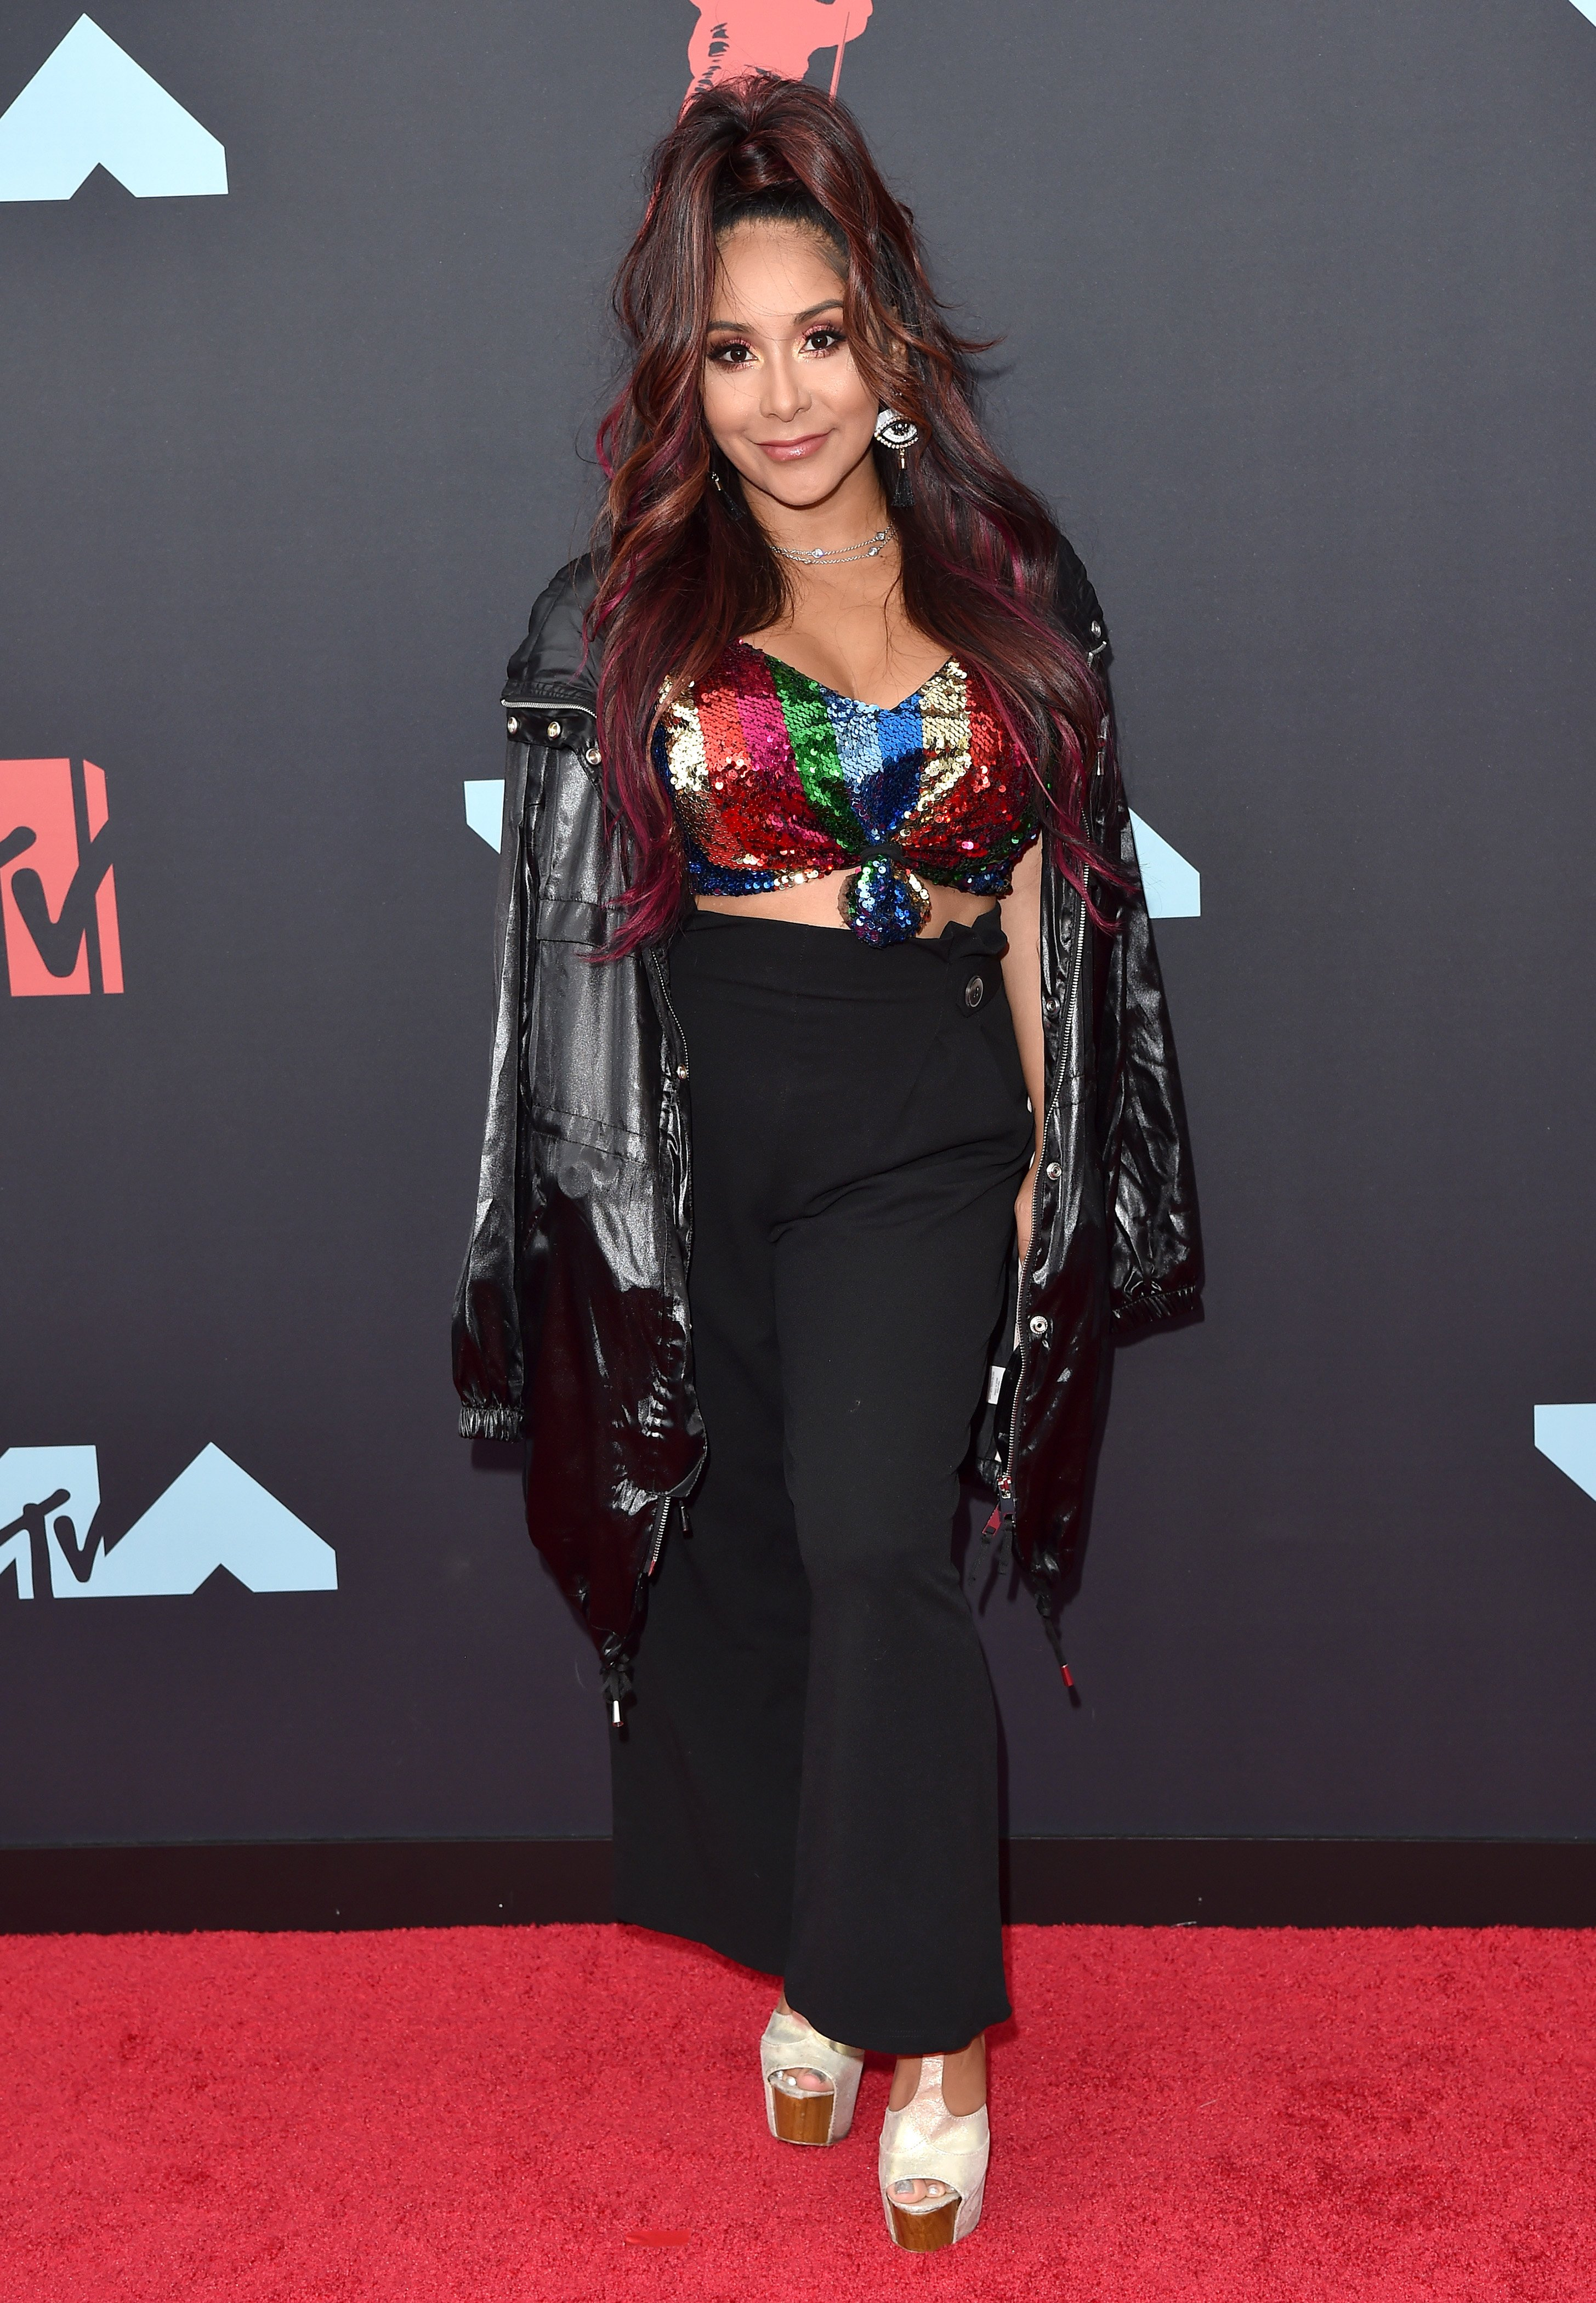 """Nicole """"Snooki"""" Polizzi attends the 2019 MTV Video Music Awards at Prudential Center on August 26, 2019 in Newark, New Jersey. 